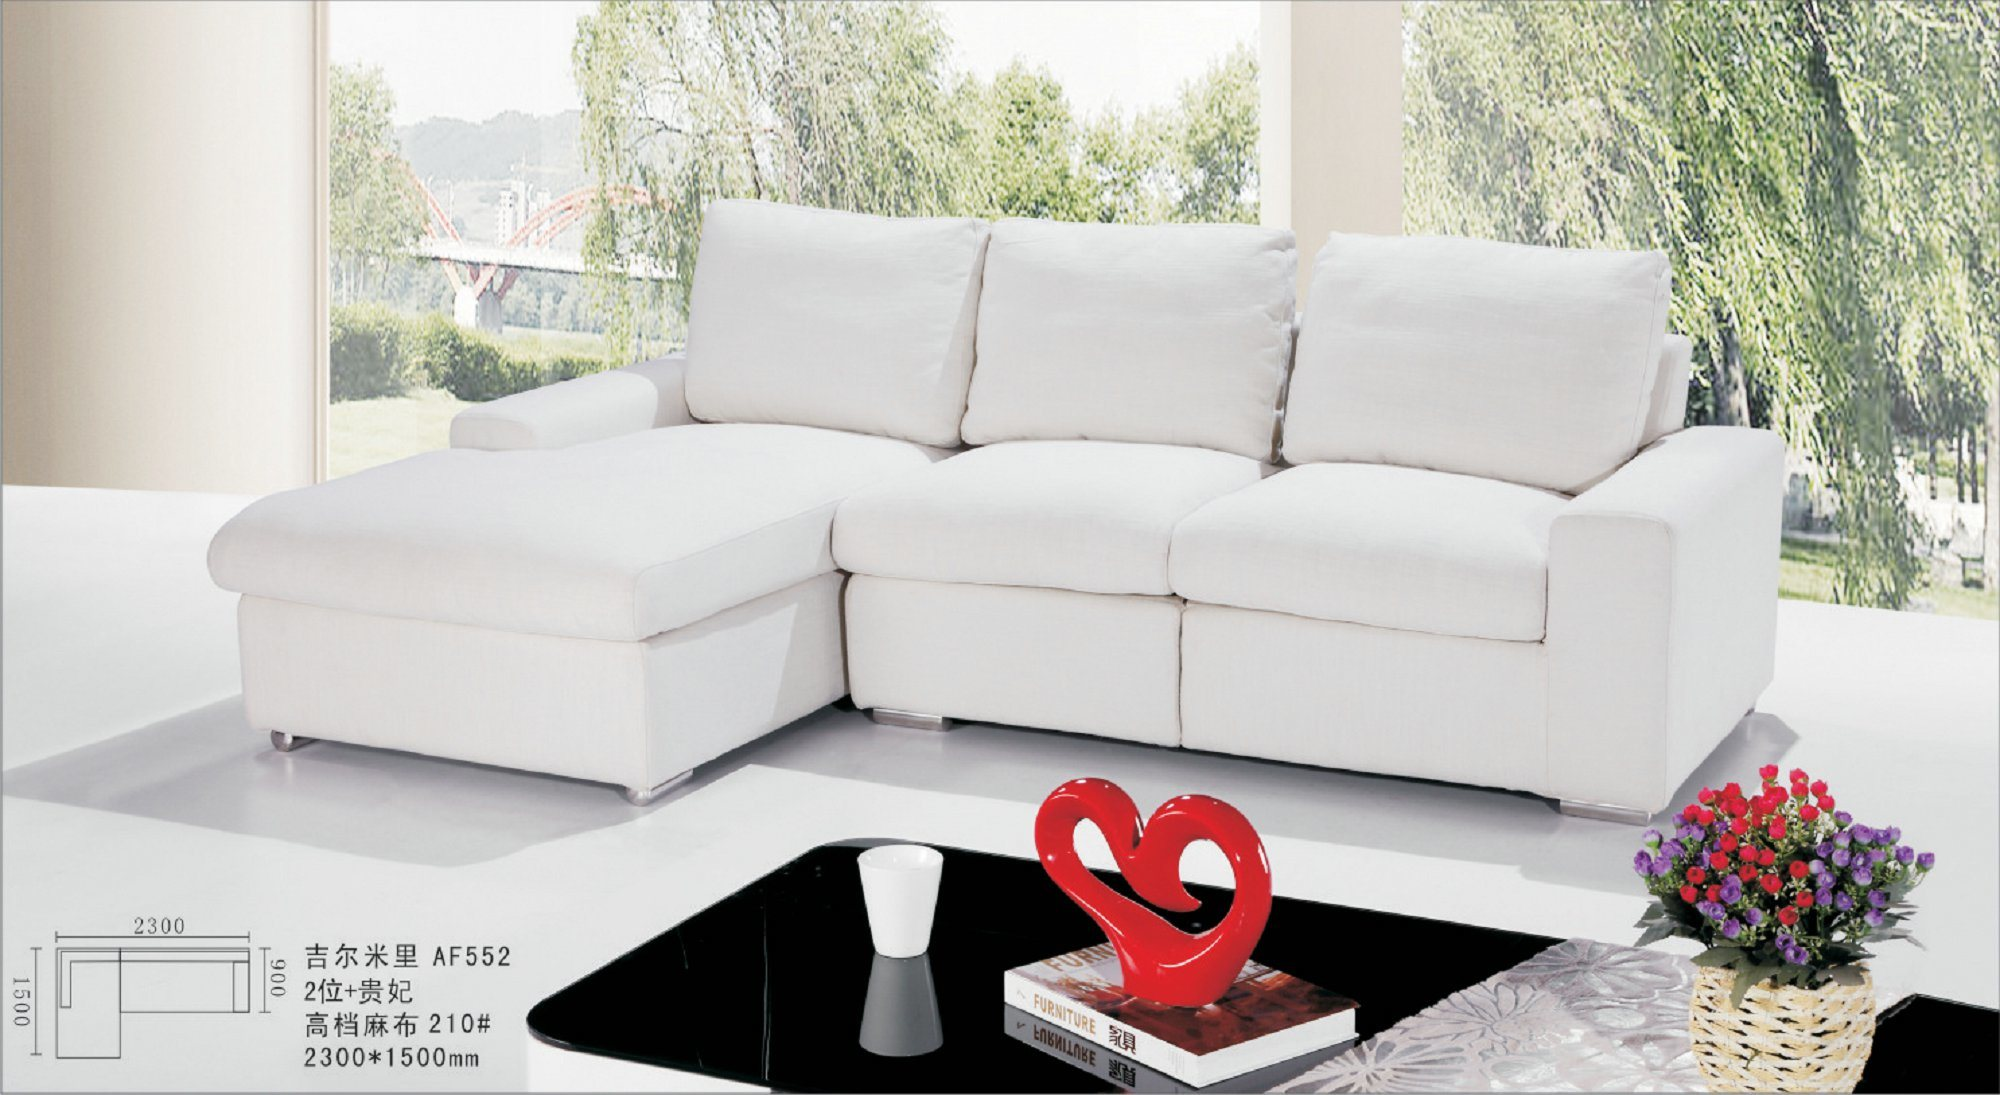 China White Upholstery Fabric Sofa Malaysia Couches s